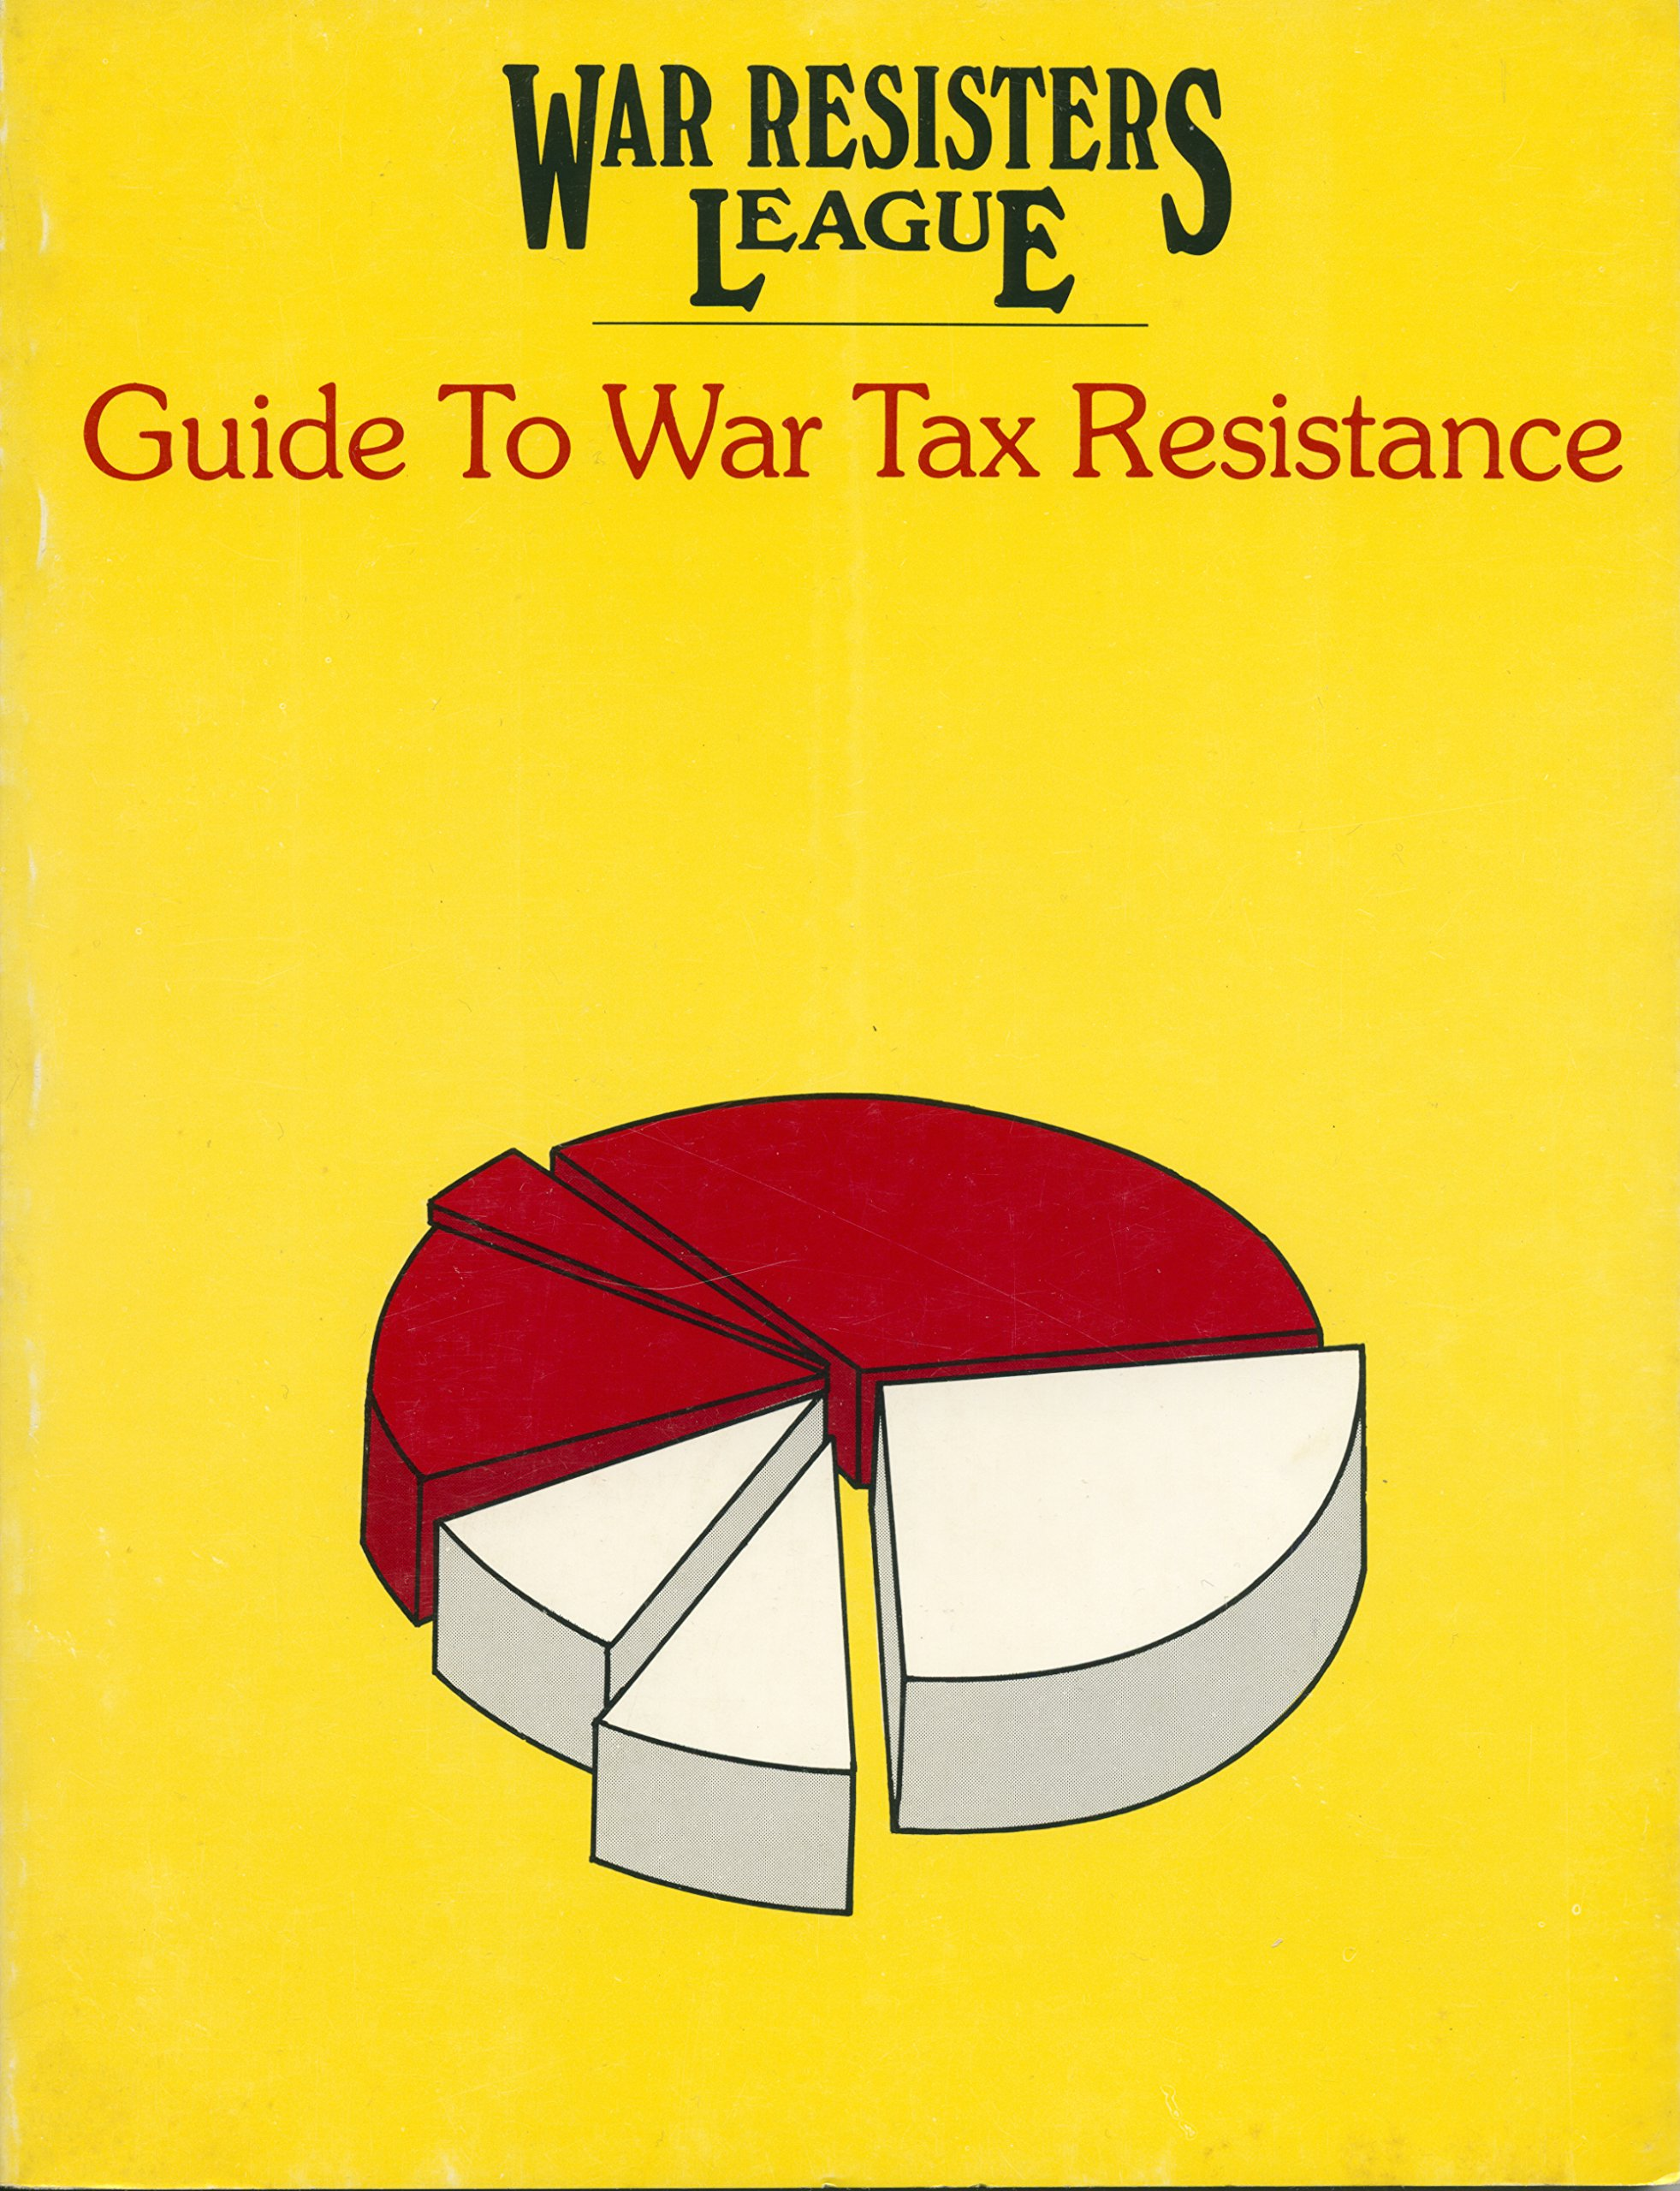 Guide to war tax resistance, Hedemann, Ed